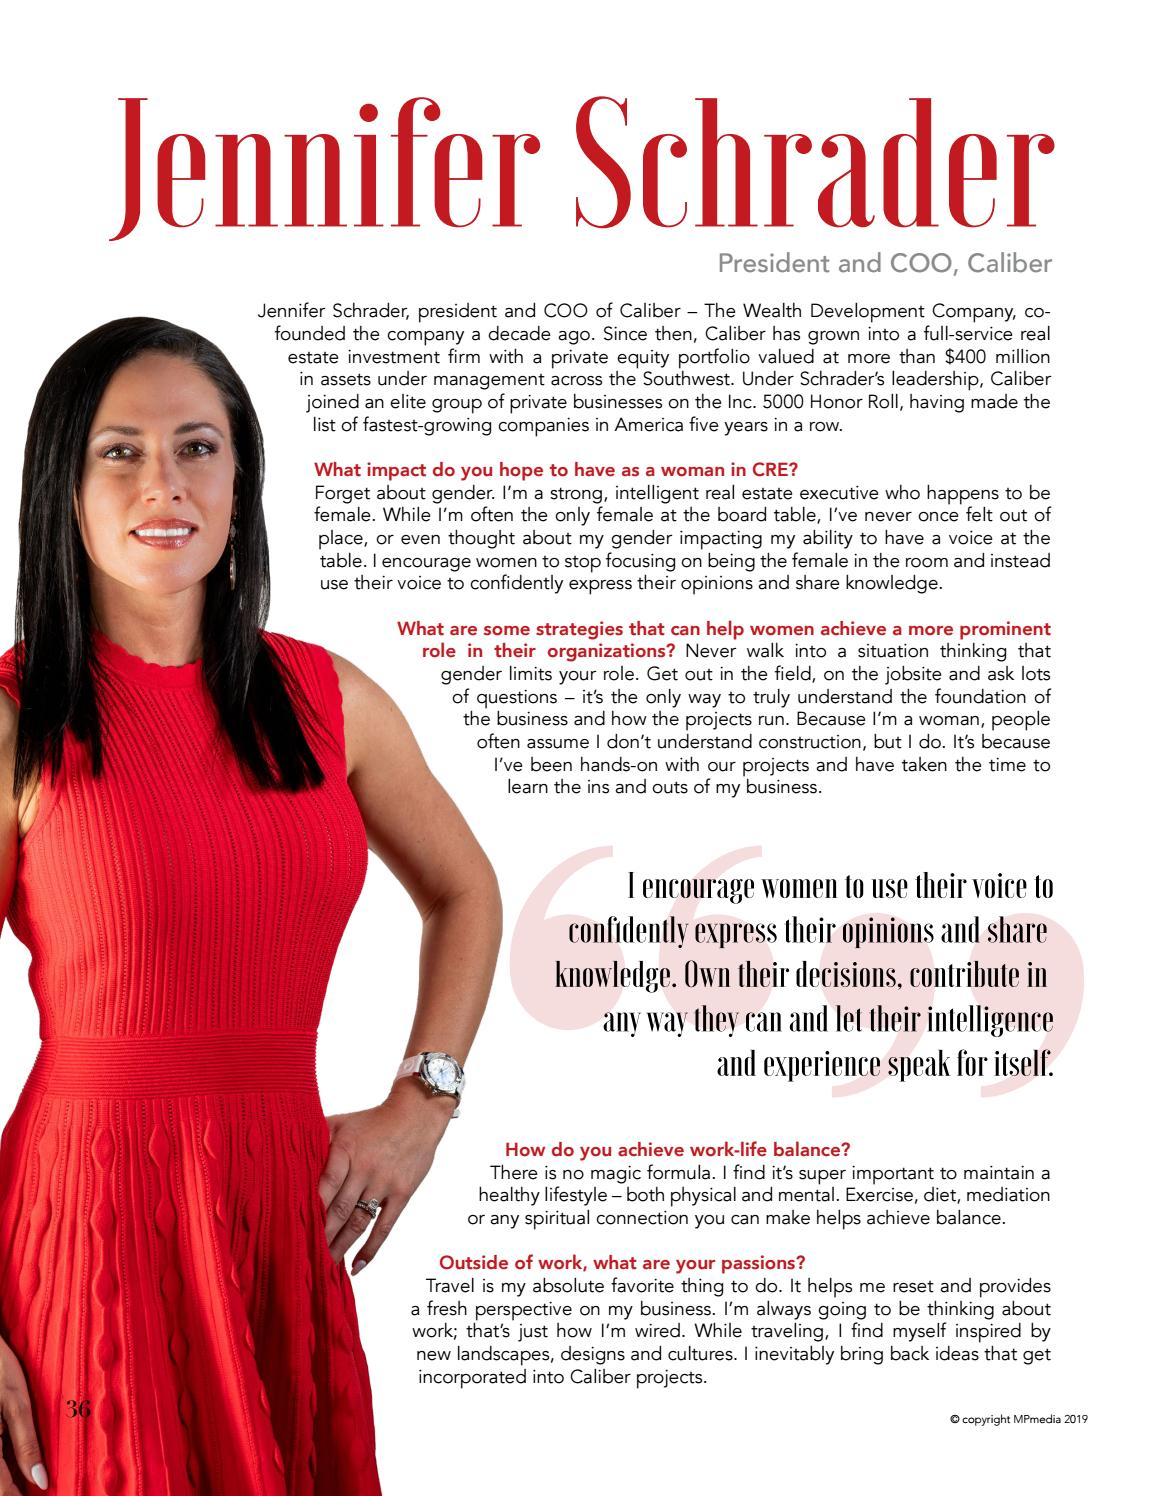 Jennifer Schrader's Women in Power feature in the 2019 edition of Executive Magazine